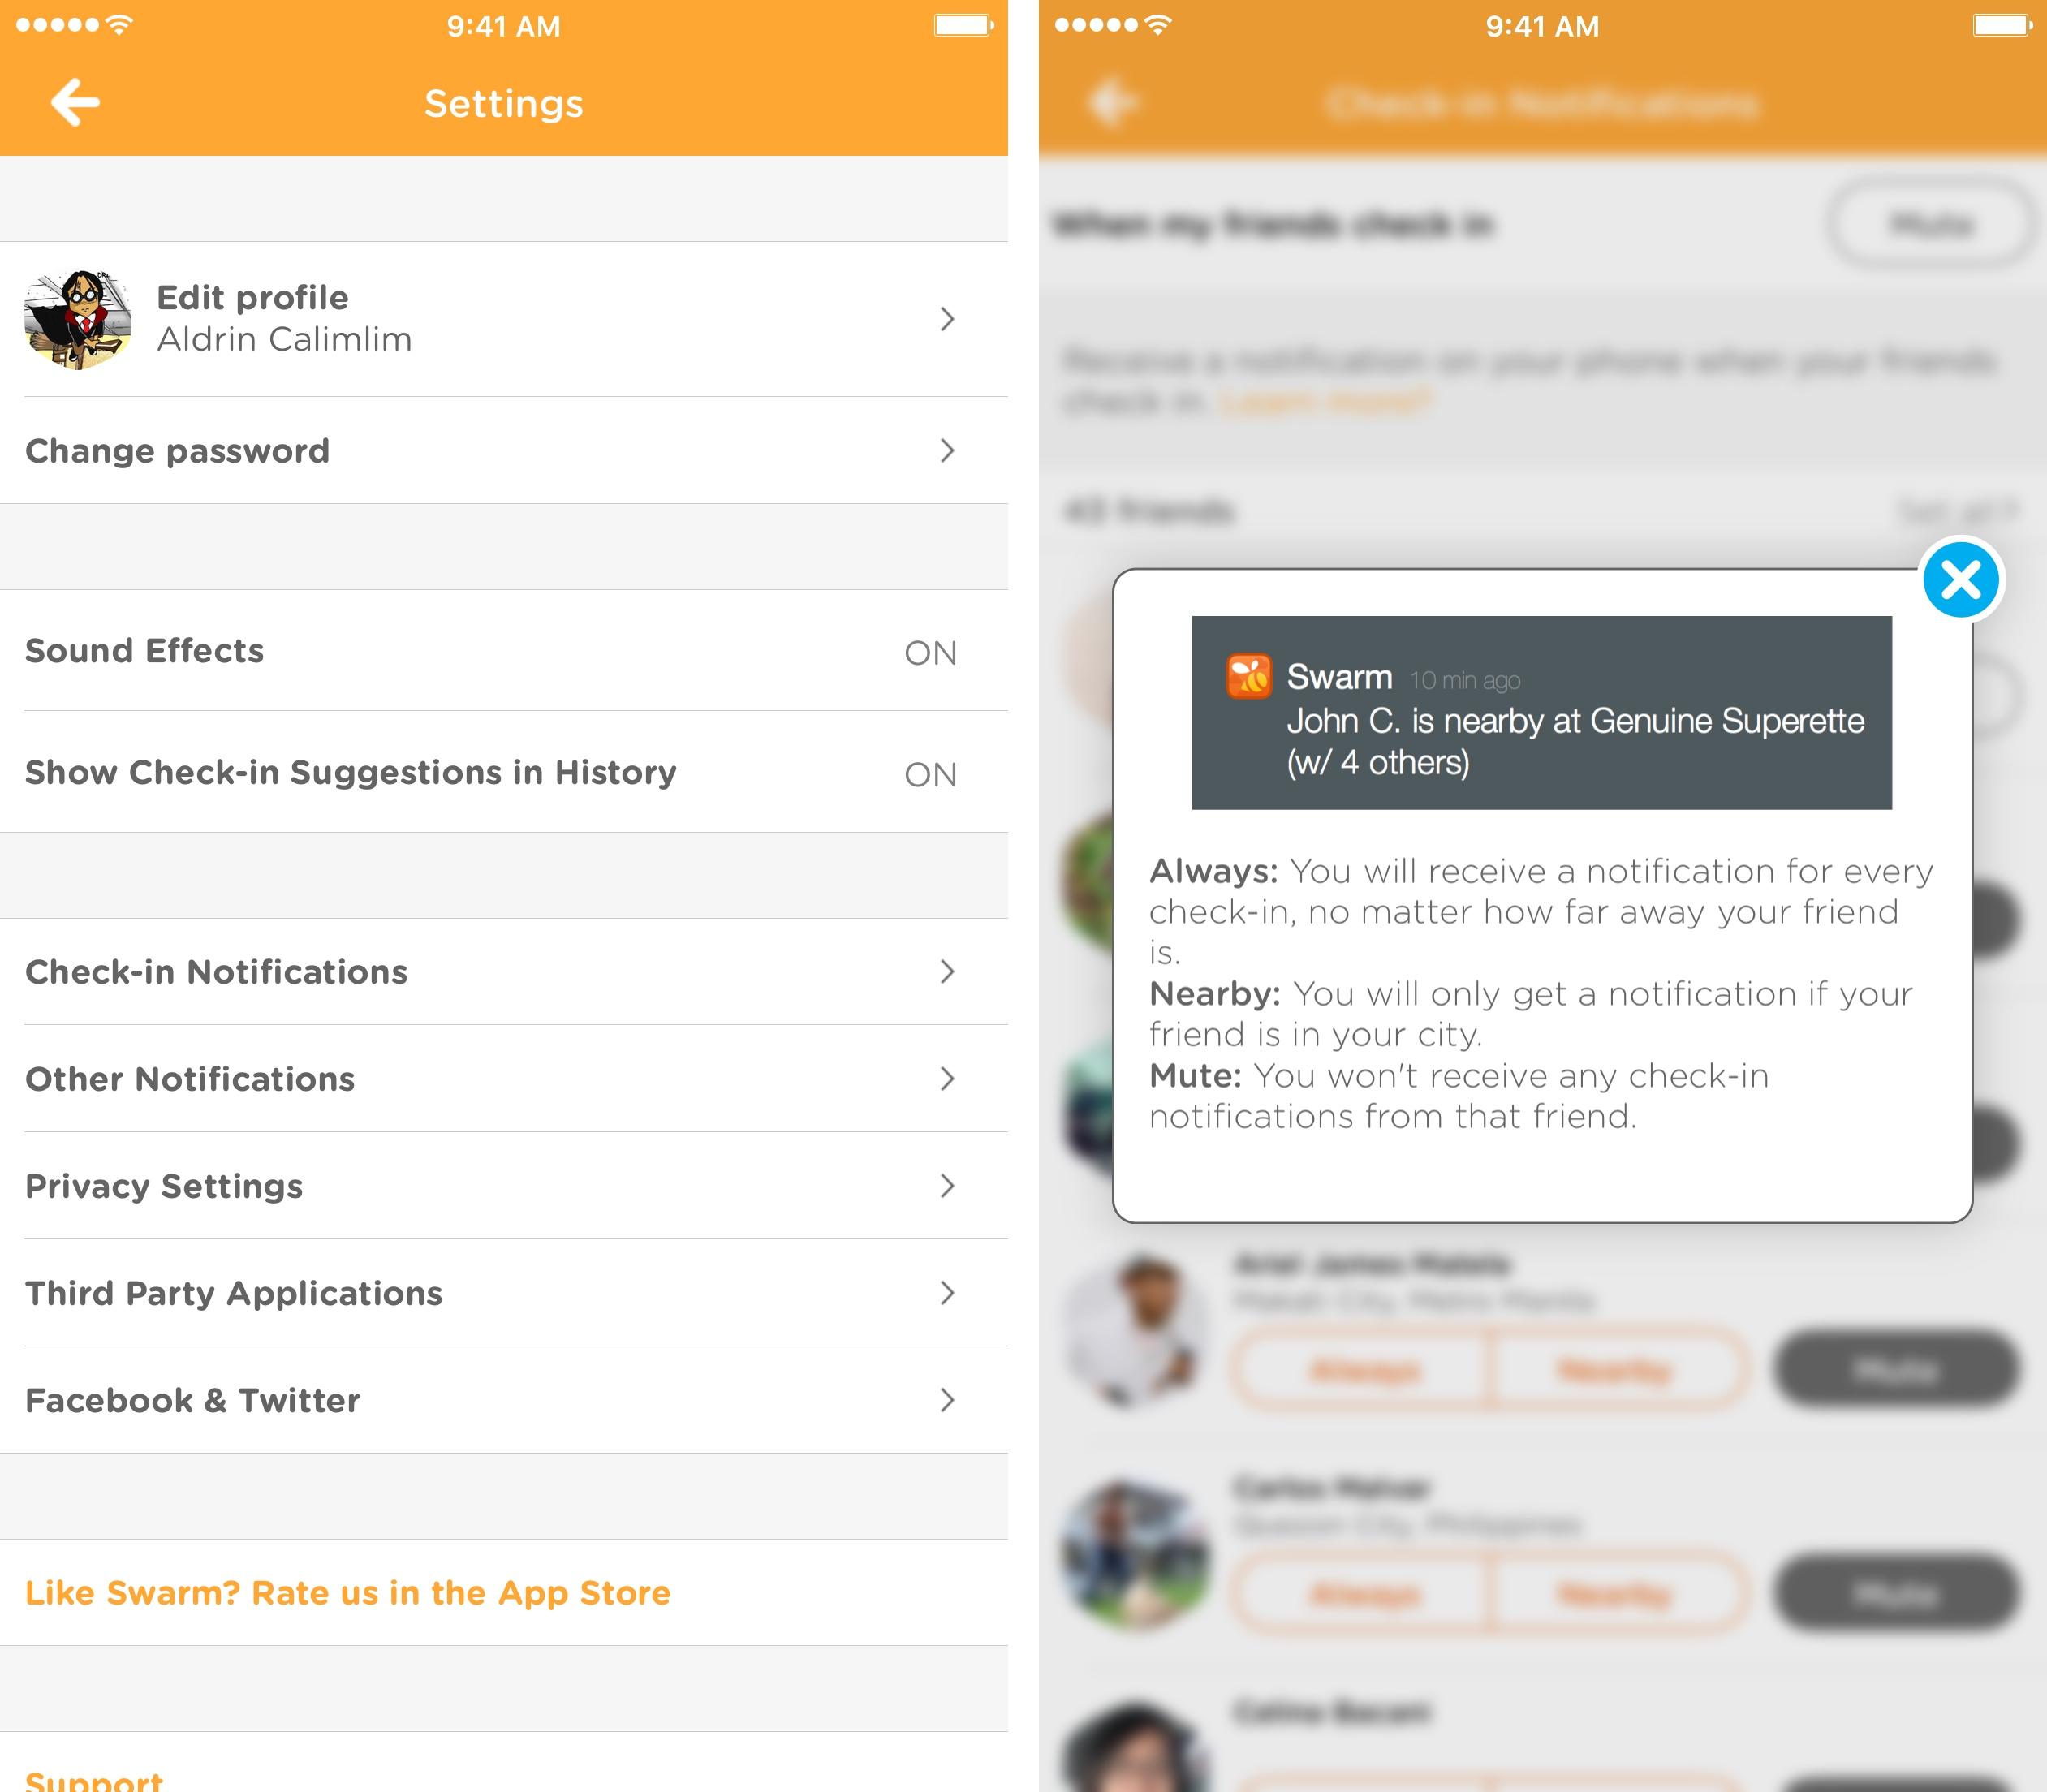 Swarm notifications